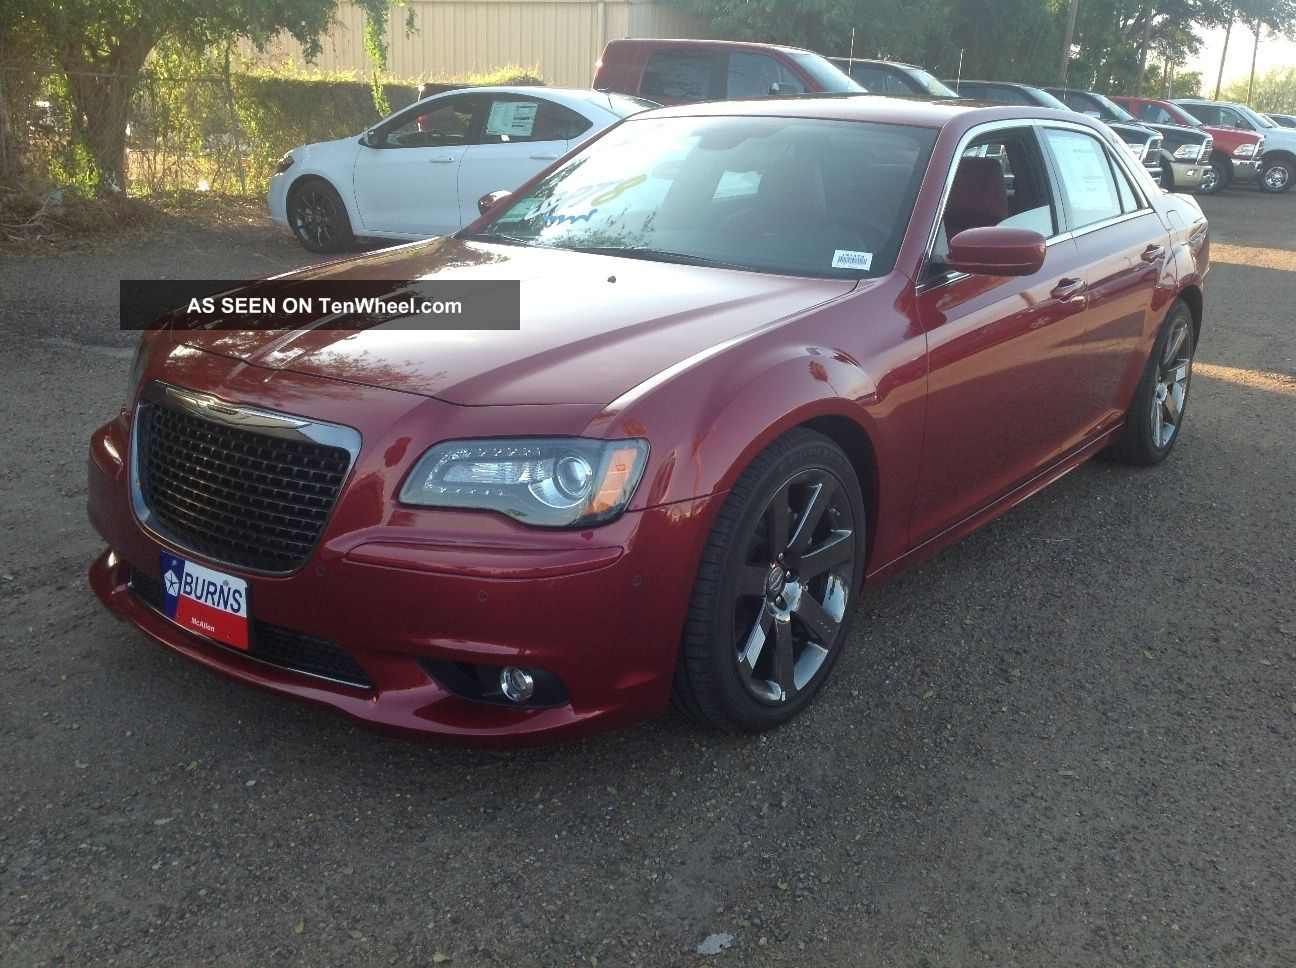 2012 chrysler 300 srt8 300 series photo. Cars Review. Best American Auto & Cars Review